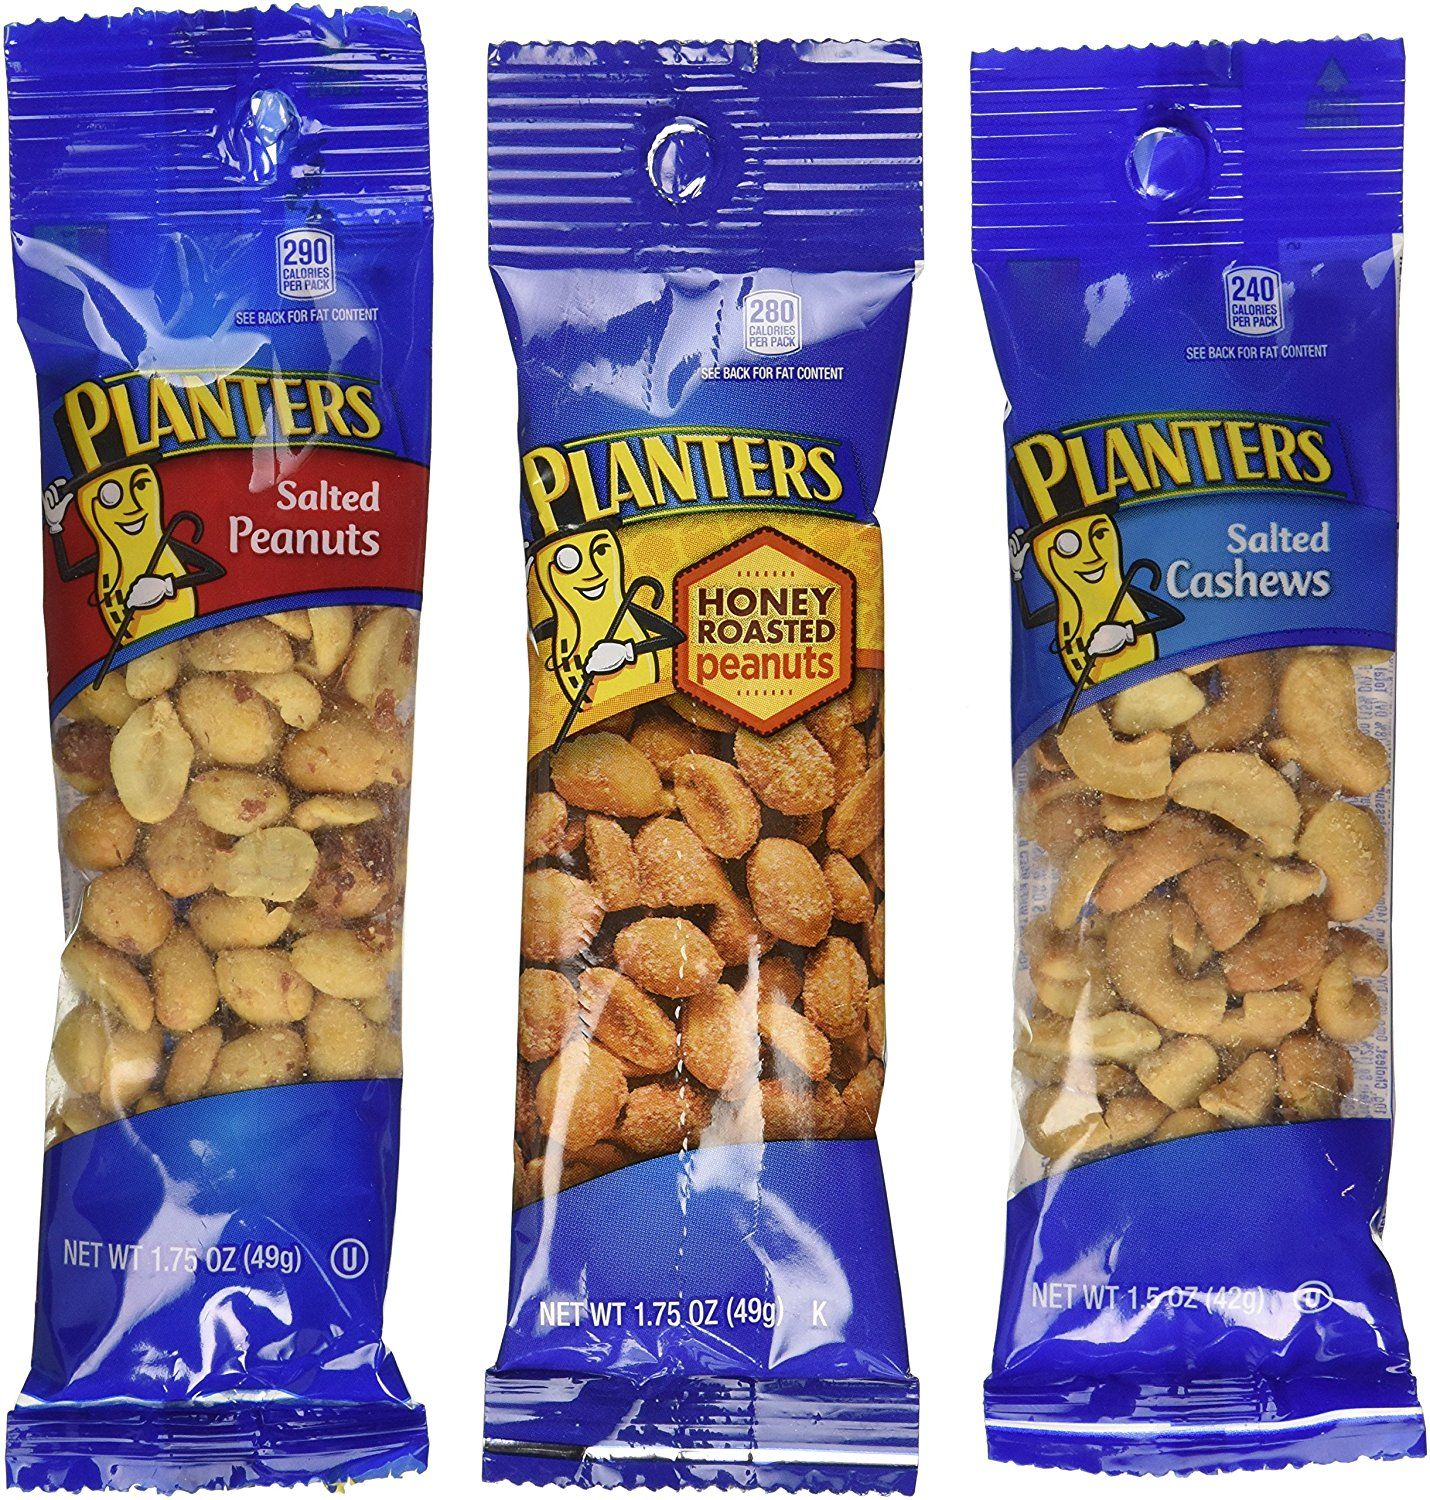 salted gourmet cashews food hl product cashew pieces grocery planter canister planters halves ounce tibs